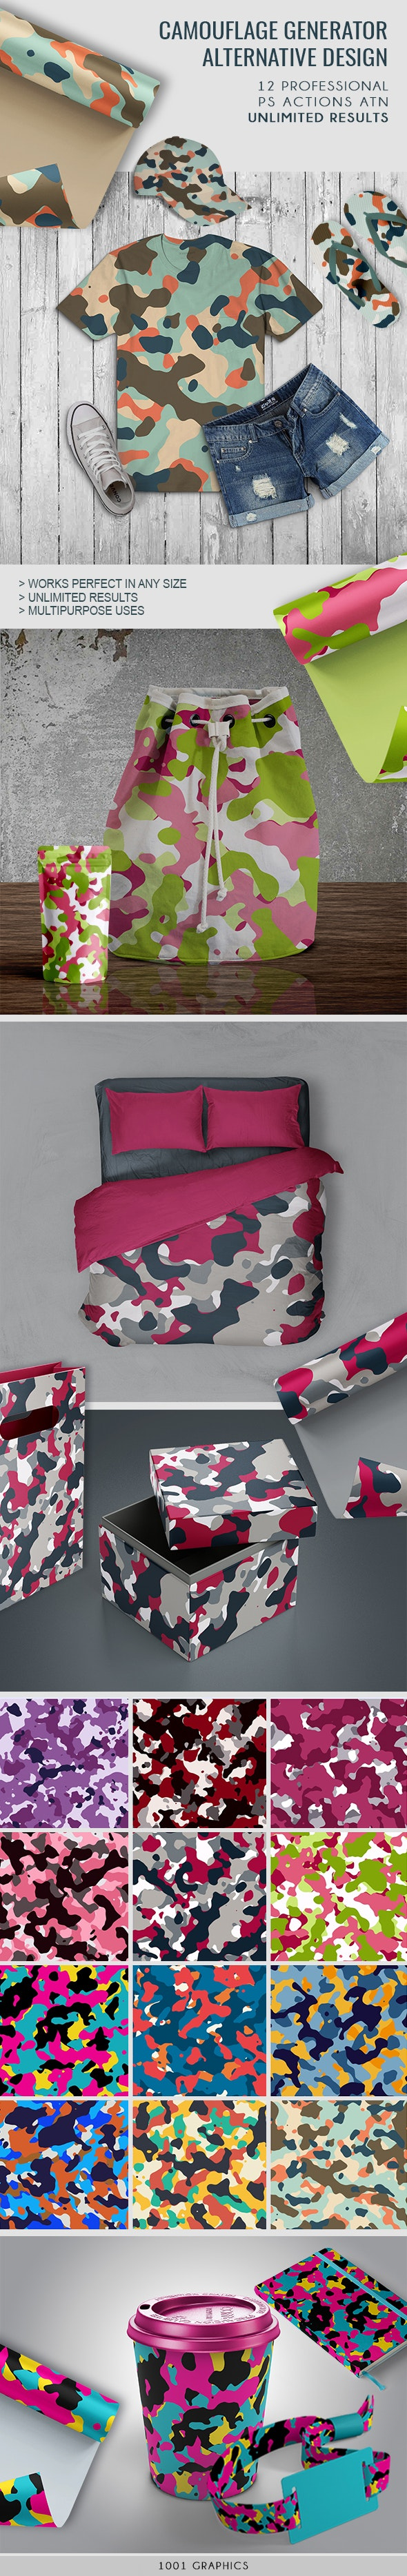 Alternative Camouflage Design Generator - 12 PS Actions - Actions Photoshop